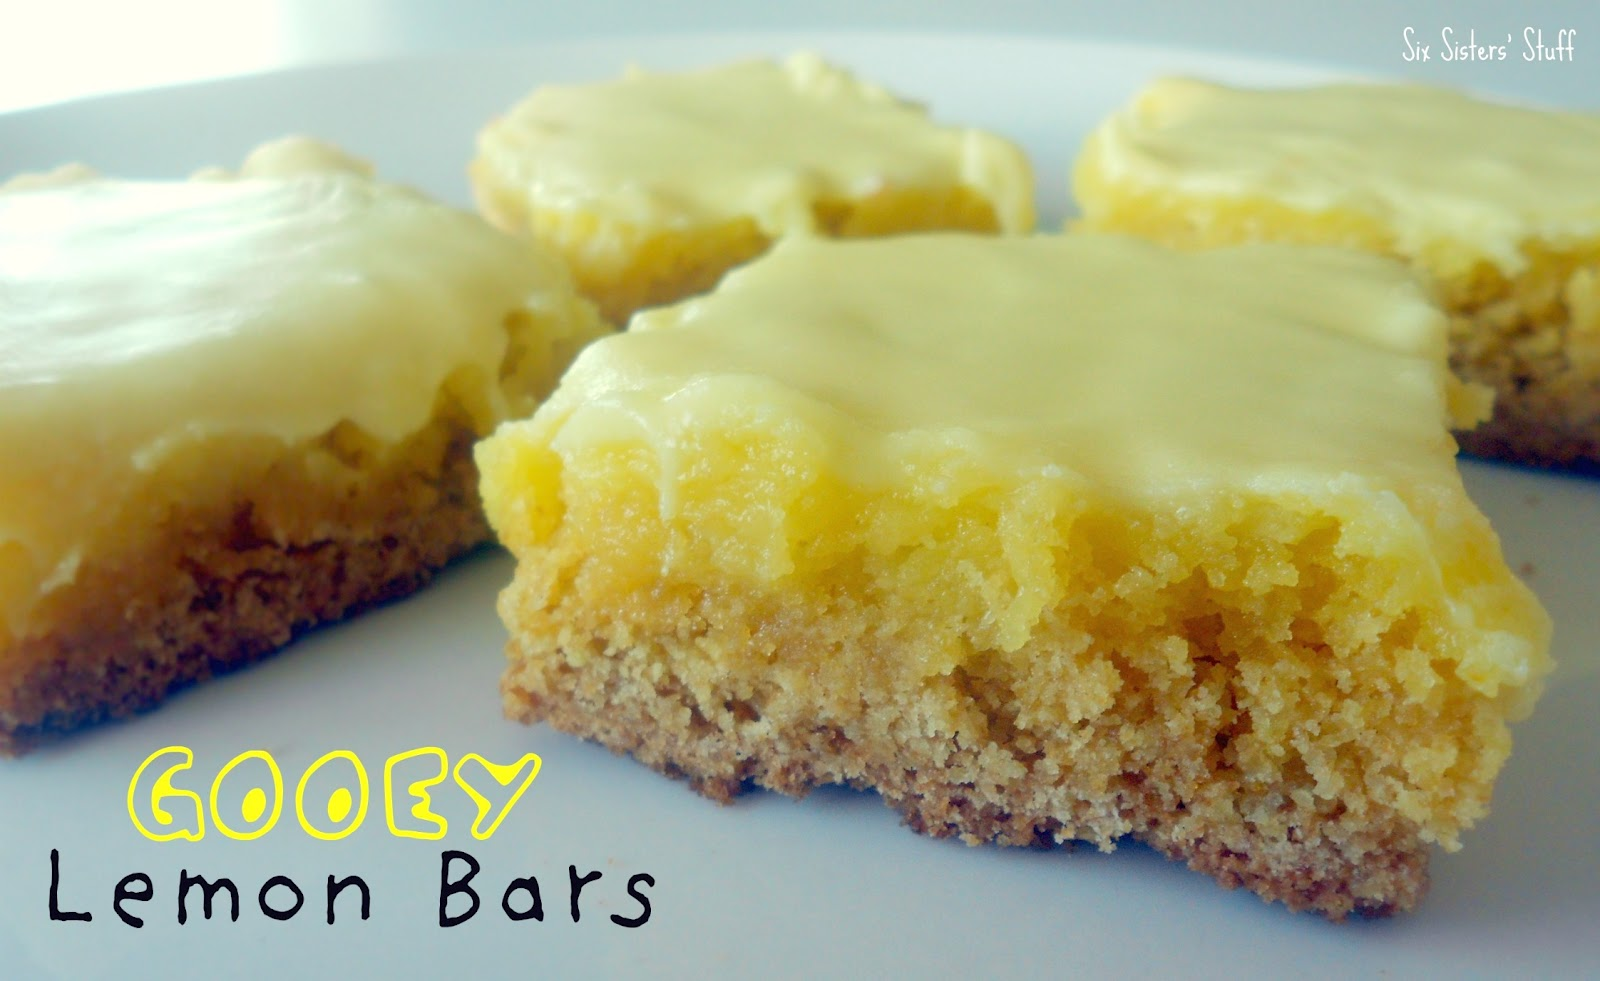 Gooey Lemon Bars Recipe | Six Sisters' Stuff